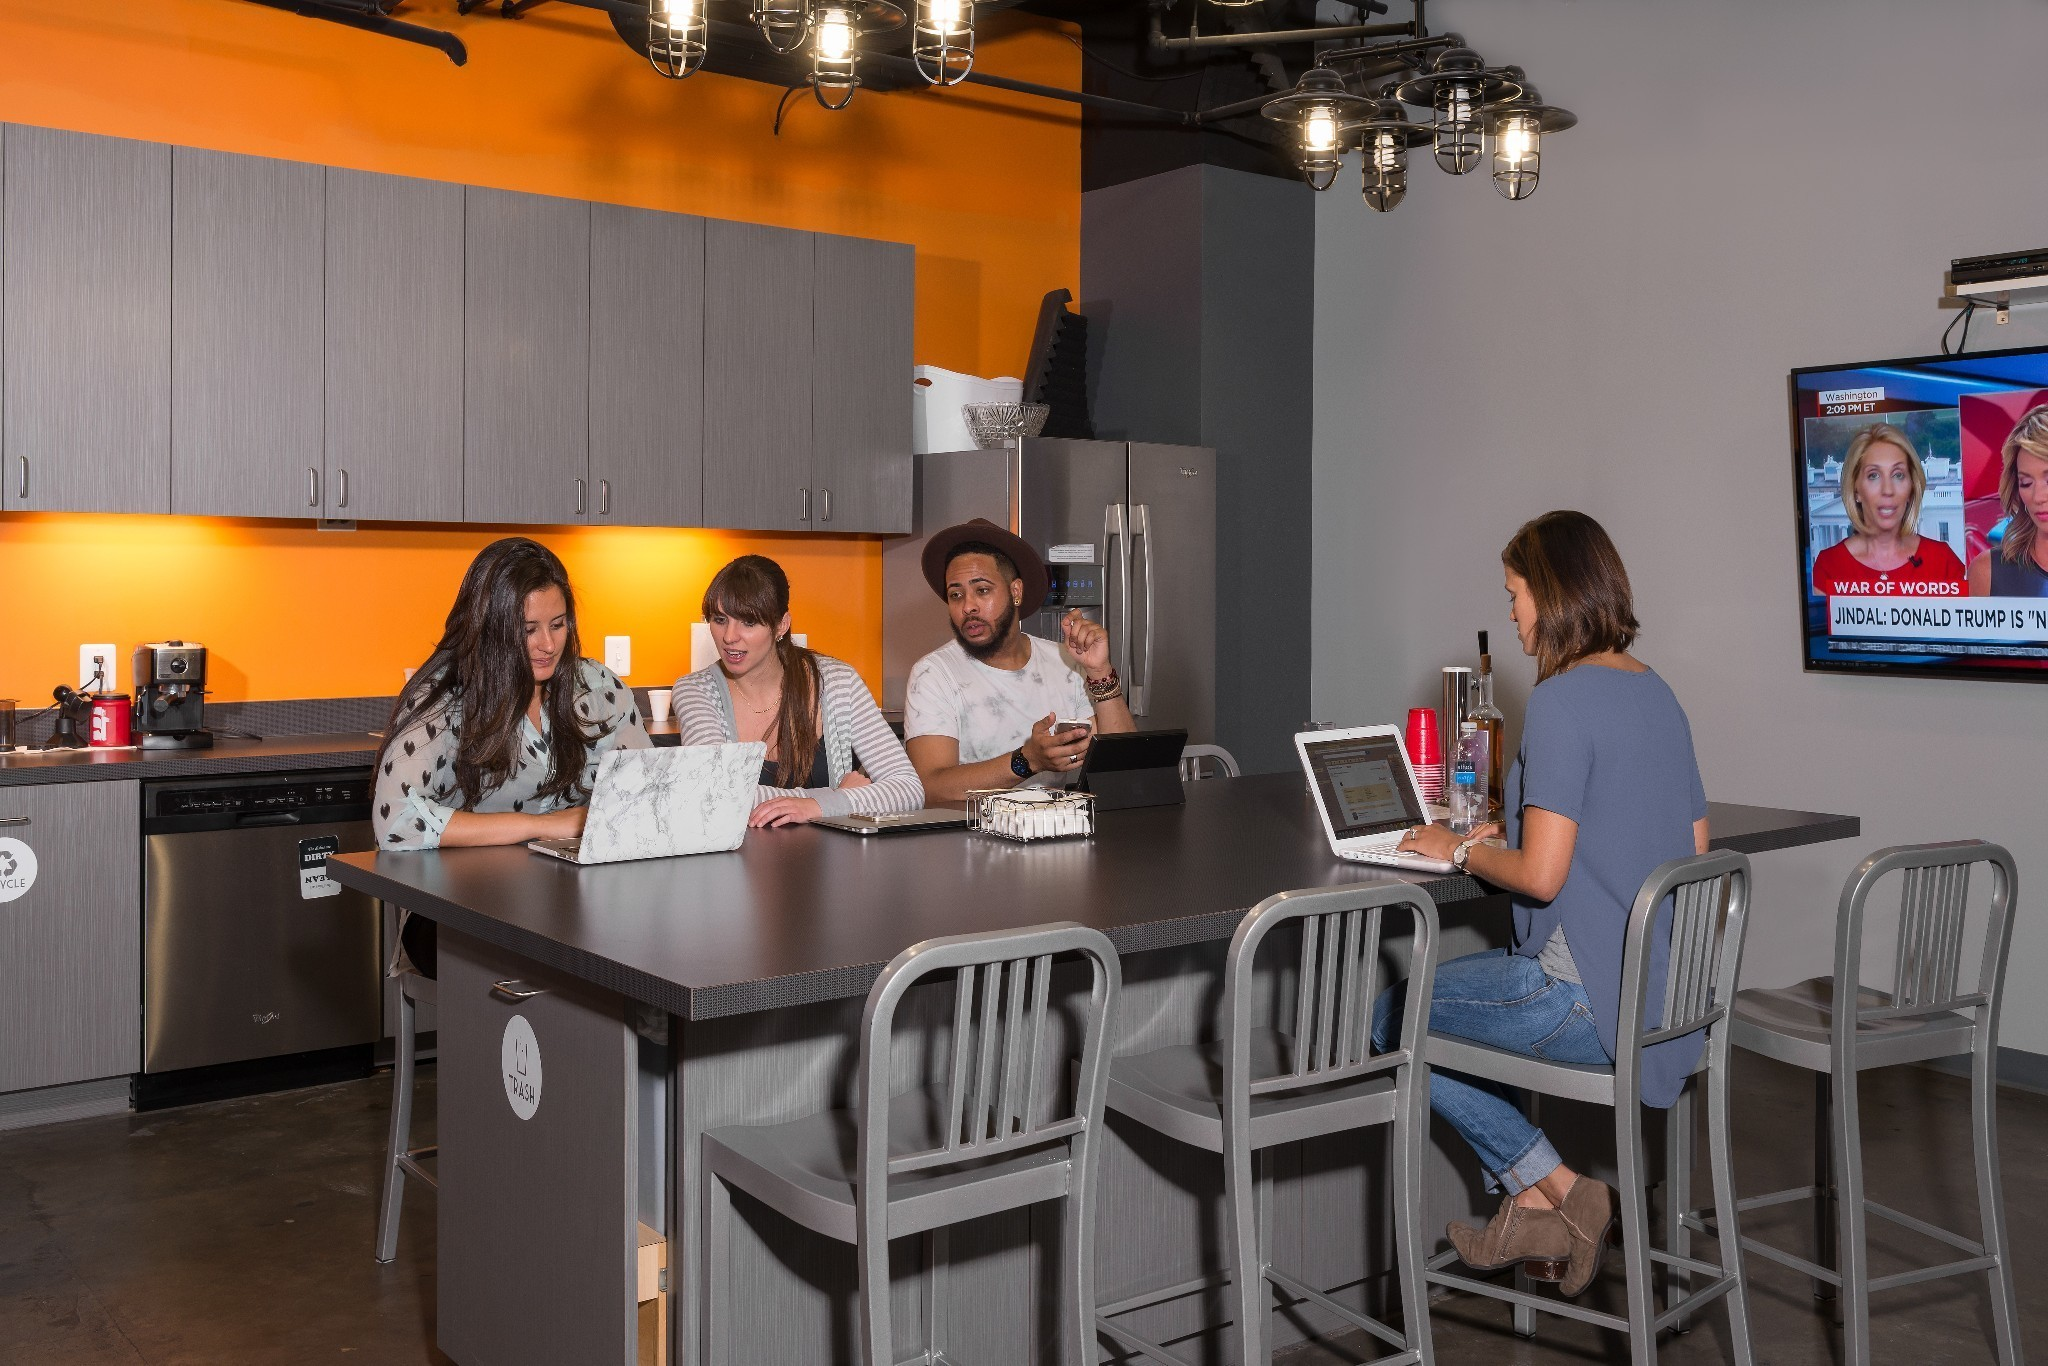 With meditation and massage, shared workspaces get into the wellness game